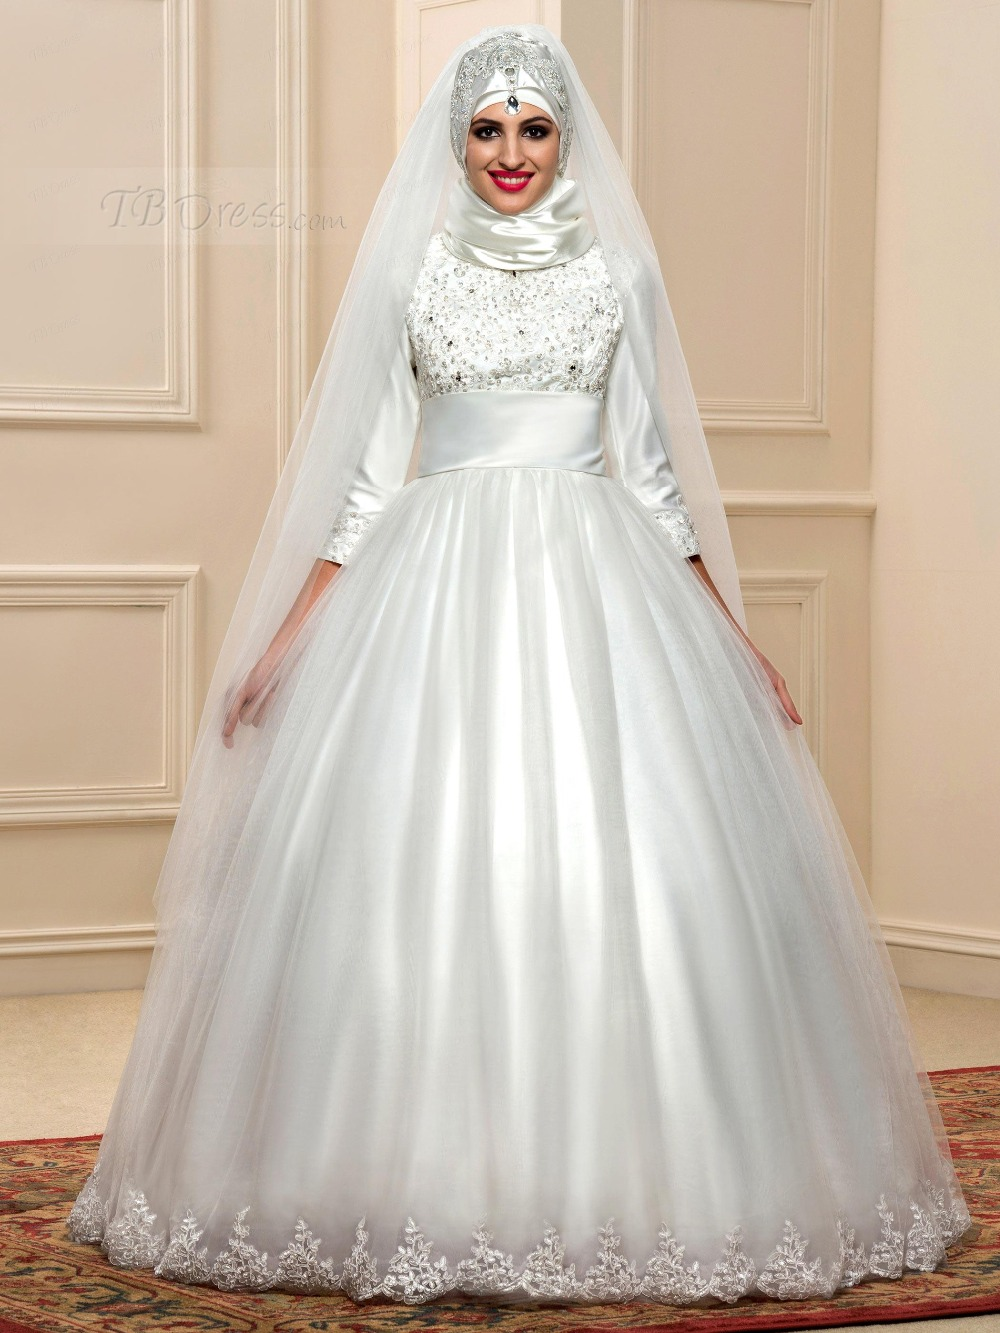 Three quarter sleeve muslim wedding dress white ball gown for One arm wedding dresses